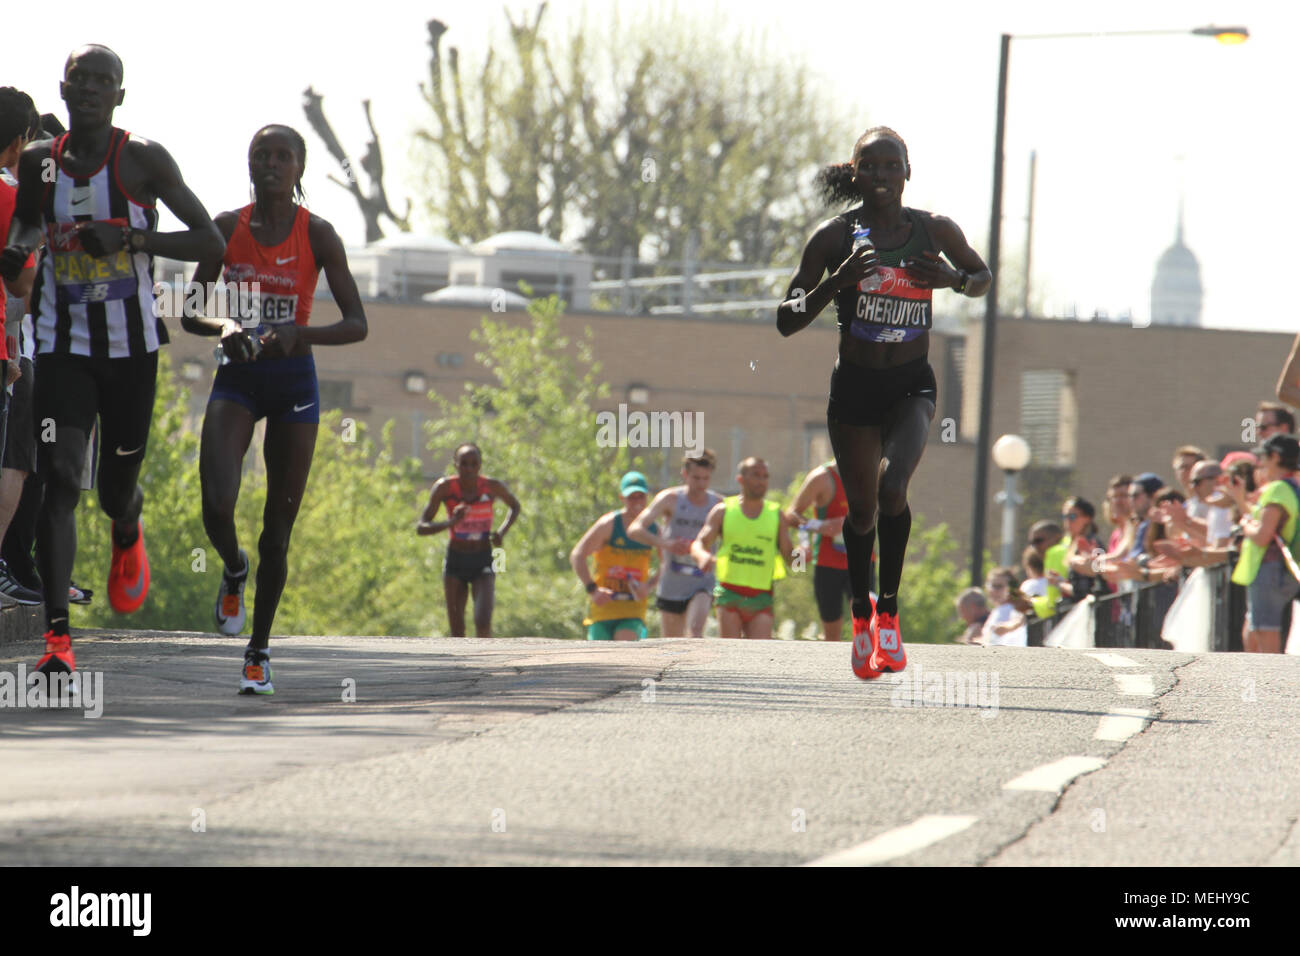 London, United Kingdom - April 22: Kenya runners Cheruiyot and Kosei race towards the 17 mile mark at Madchutte during the Virgin Money London Marathon on April 22, 2018. The two came in first and second respecively.  Over 40,000 are expected to start the 26.2 miles run from Greenwich to Westminster.© David Mbiyu/Alamy Live News - Stock Image